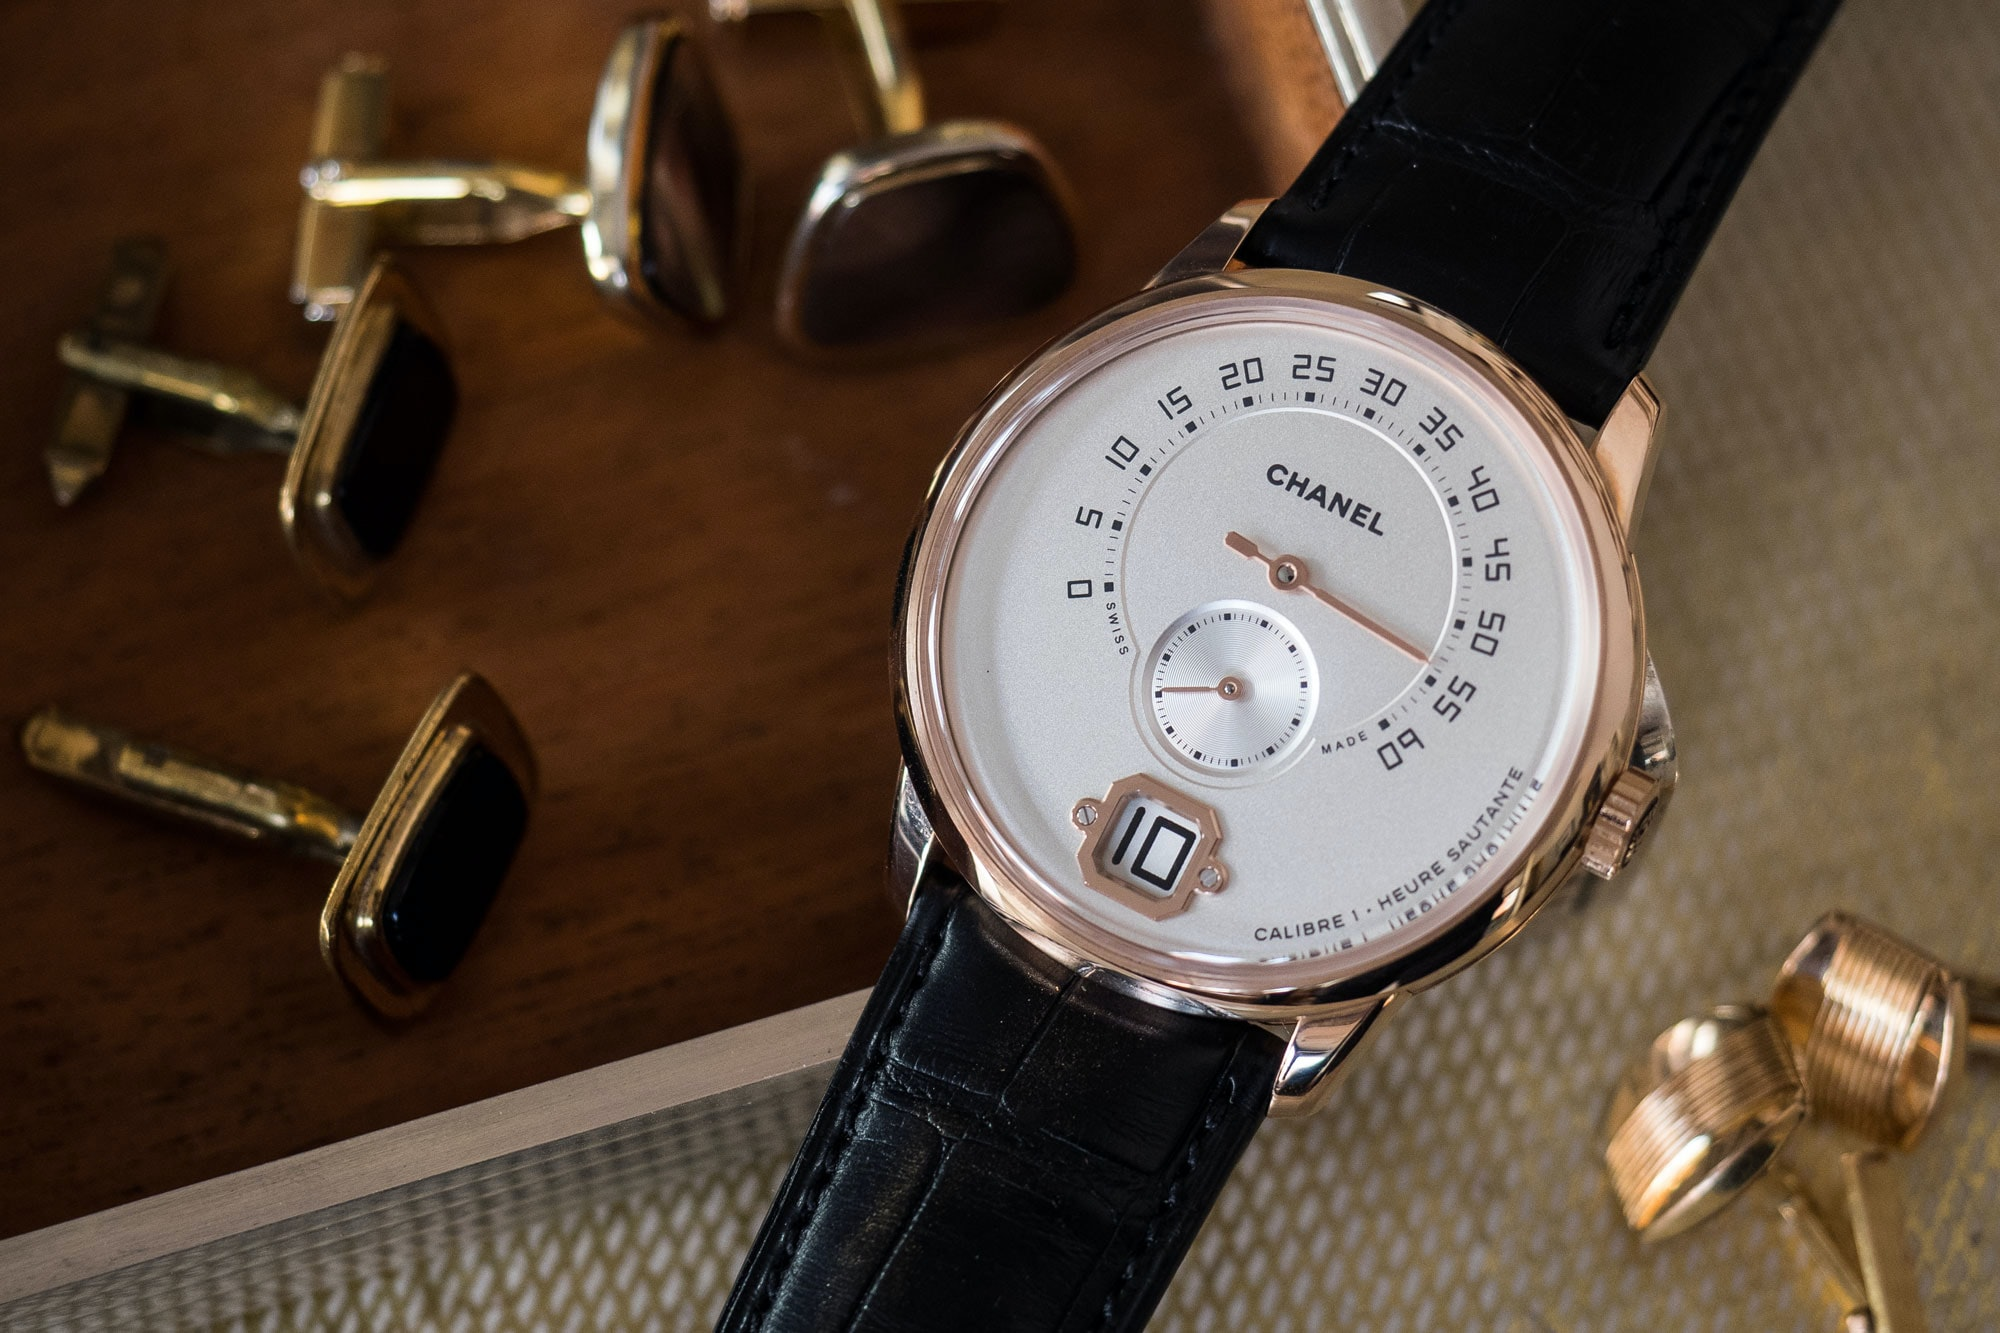 monsieur de chanel Editorial: Our Favorite Things About The Watch Industry In 2016 (And Our Hopes For 2017) Editorial: Our Favorite Things About The Watch Industry In 2016 (And Our Hopes For 2017) chanel